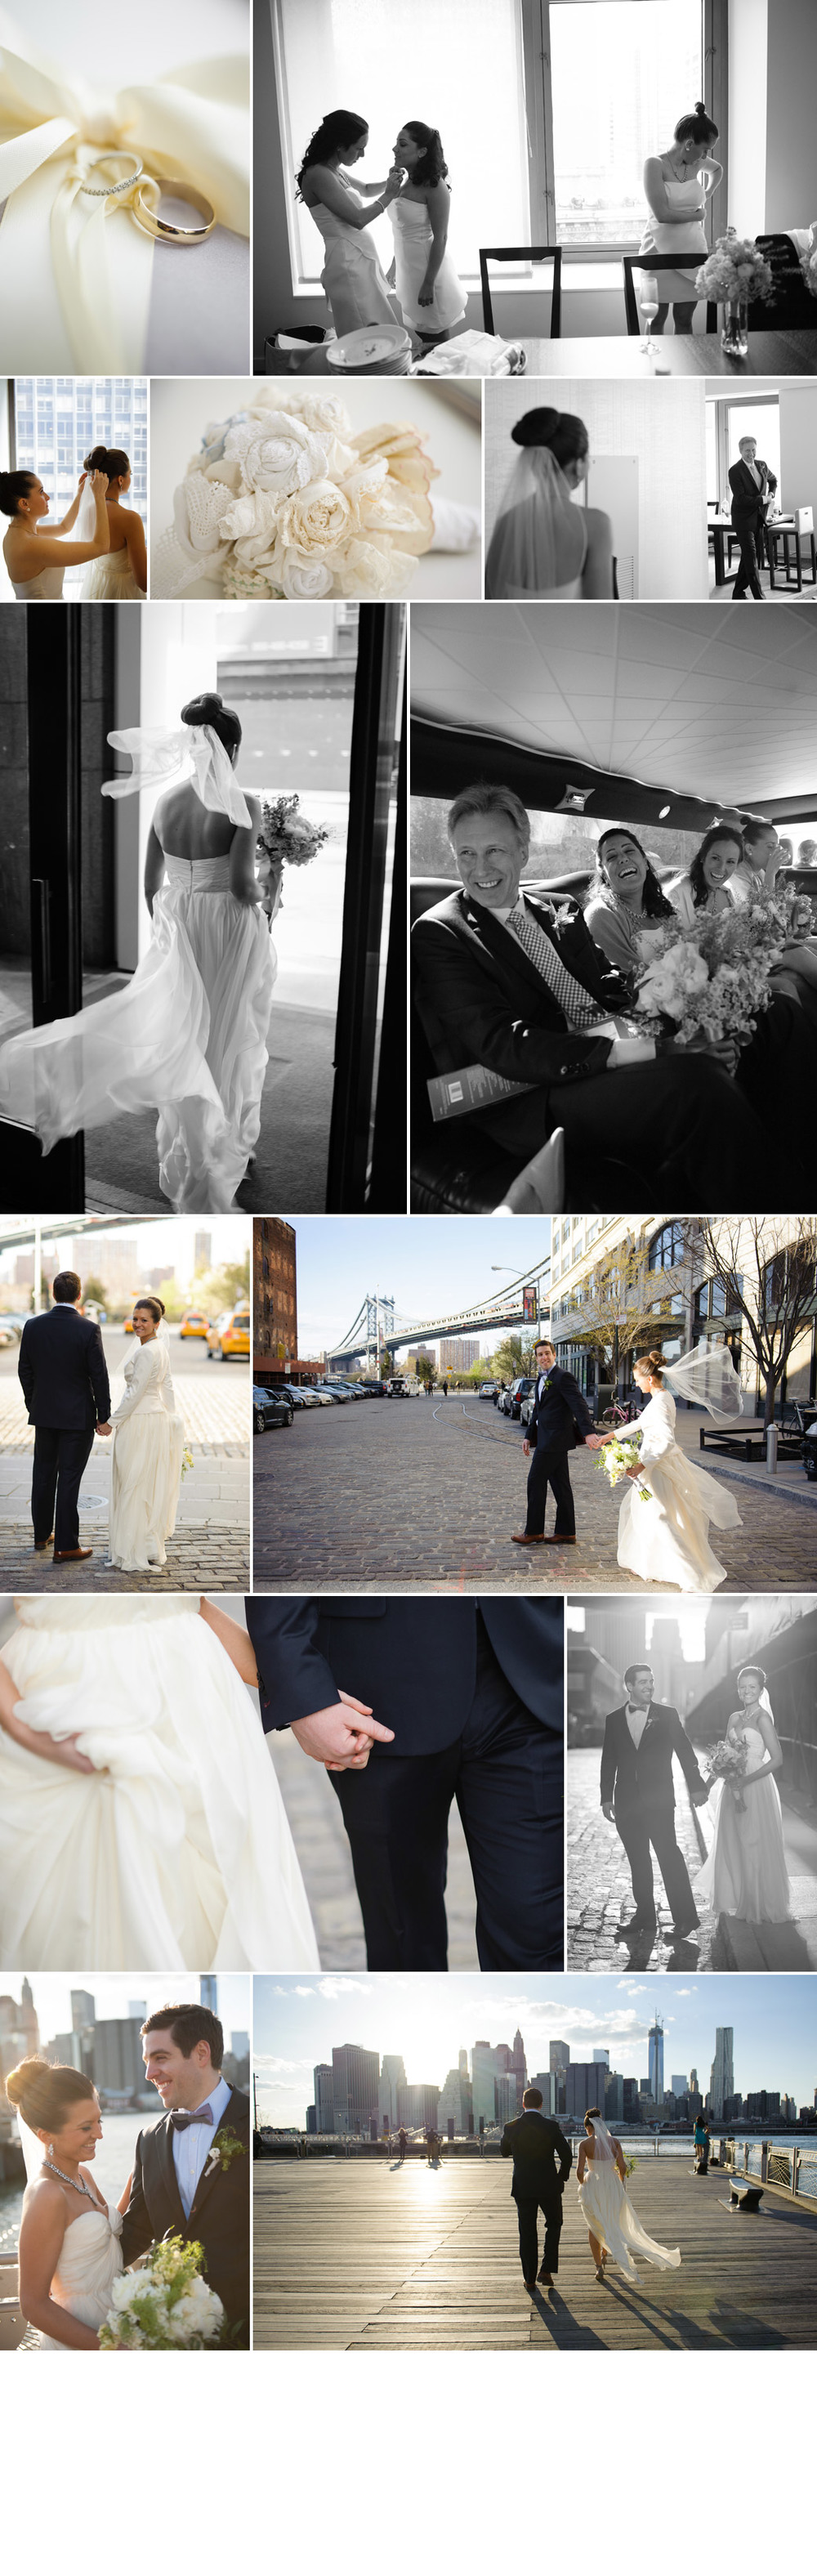 dumbo-wedding-nyc.jpg